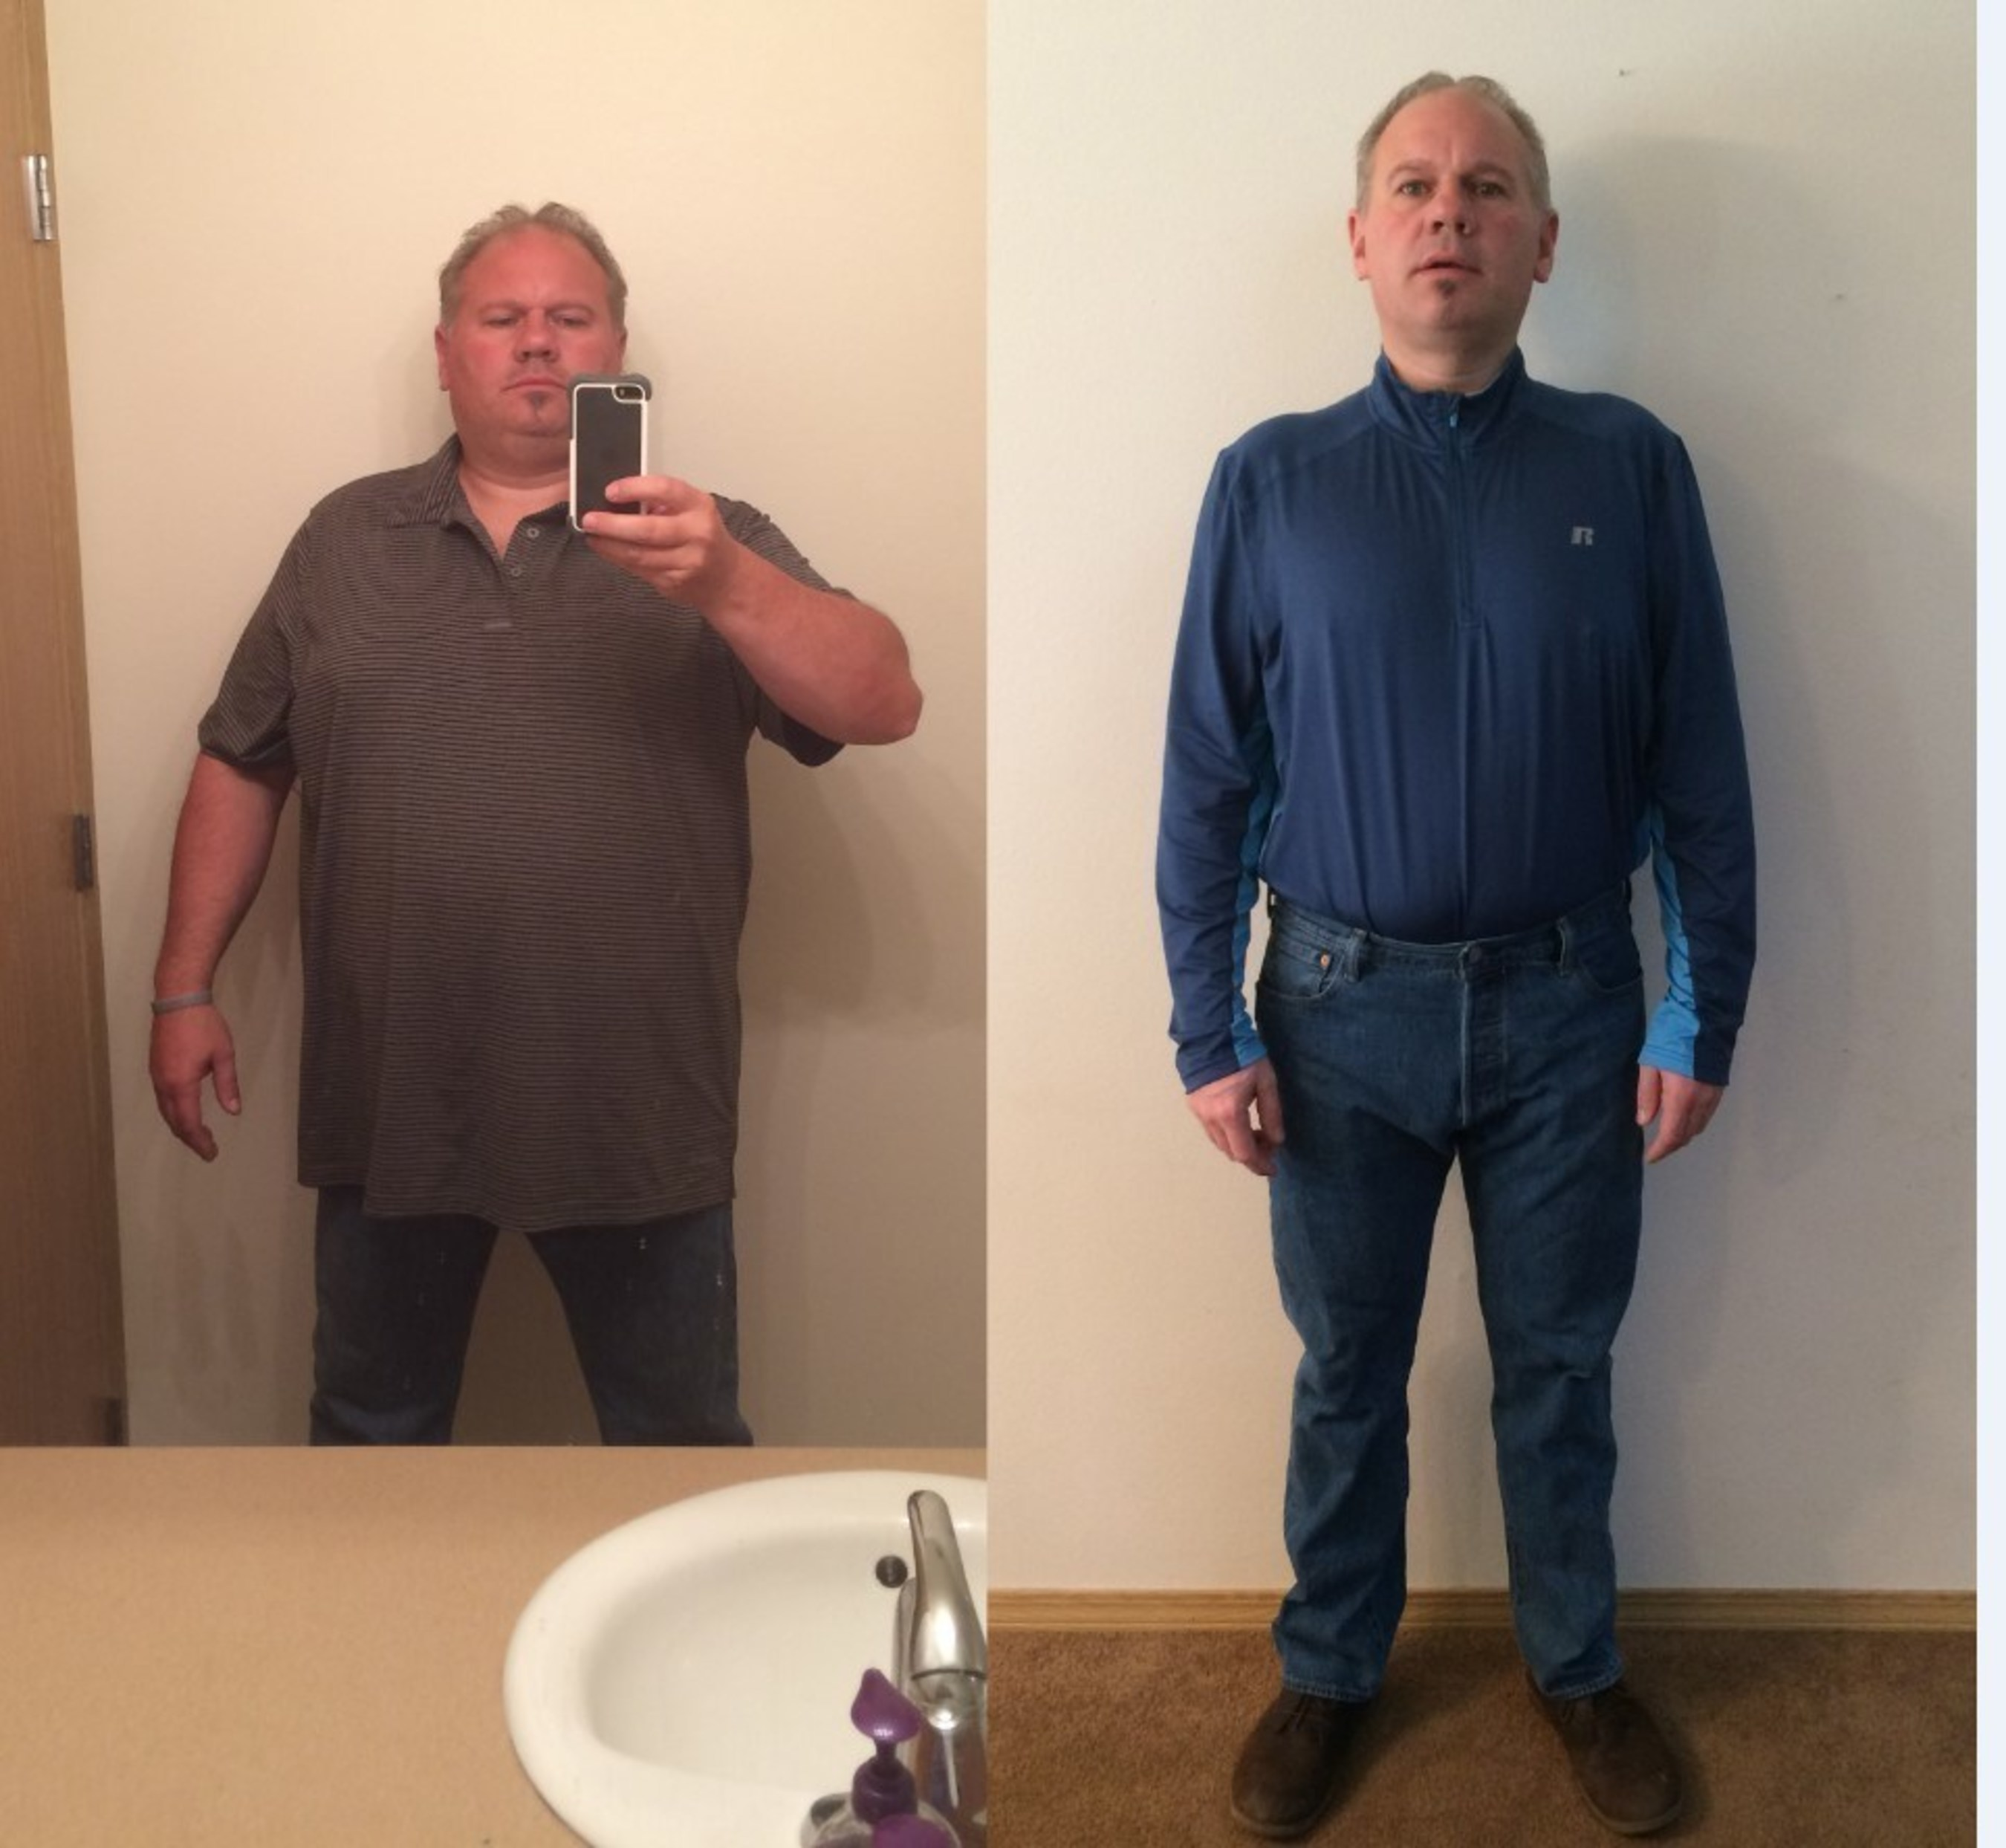 Charlie has lost 81 pounds in 12 months and credits ReShape for his renewed health and quality of life.